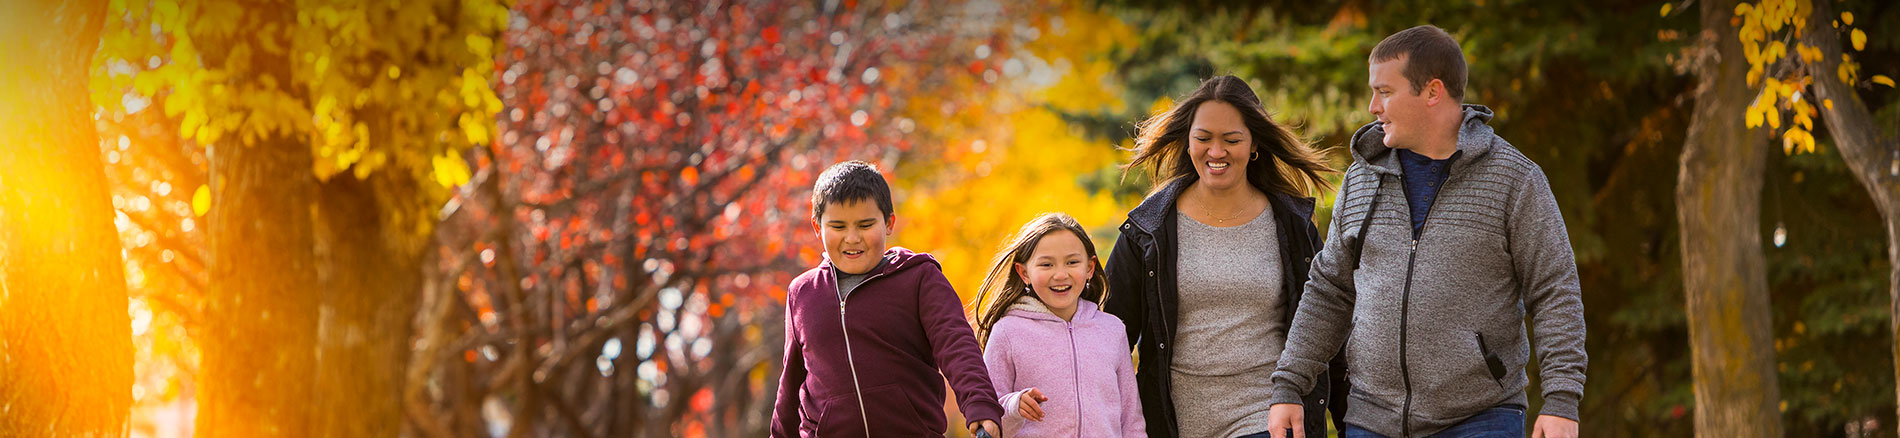 Family walking in the fall time